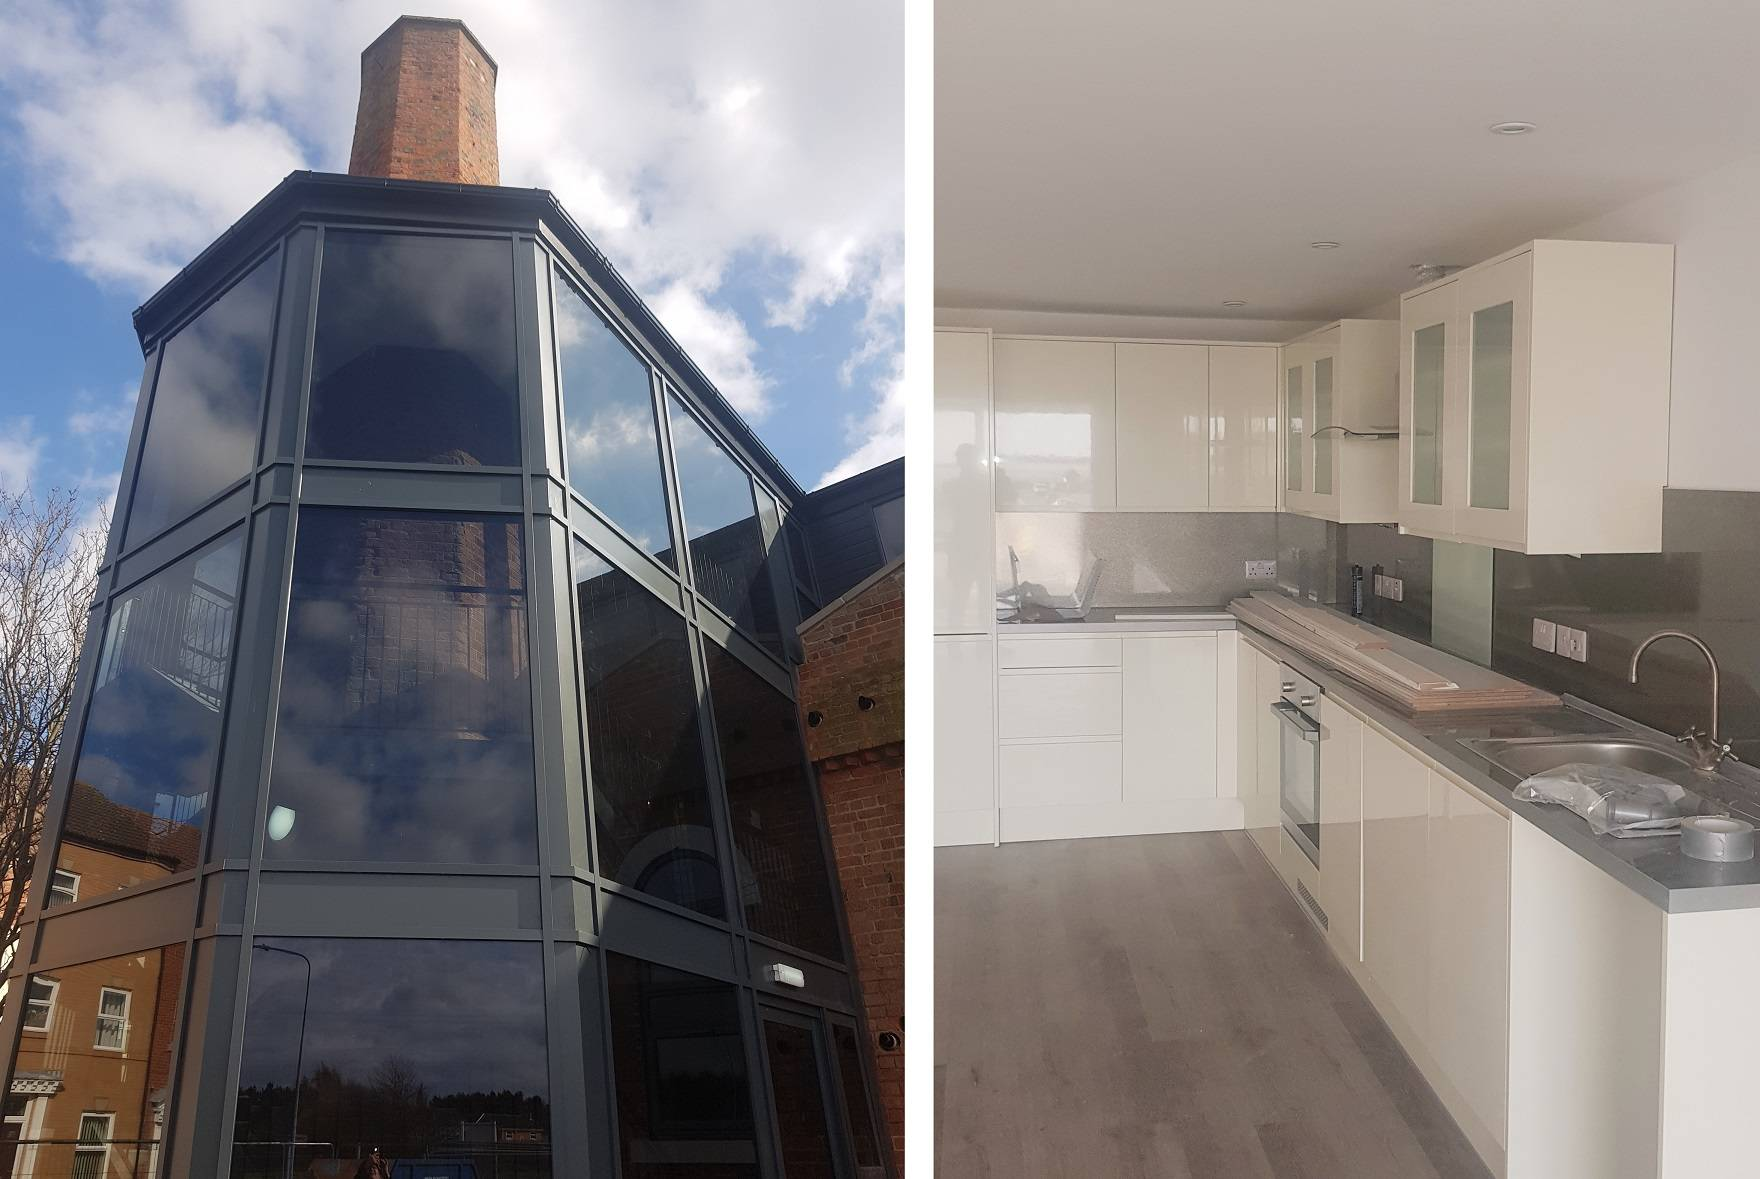 Hull Serviced Apartments has since invested £1.5 million to redevelop the Winding House.